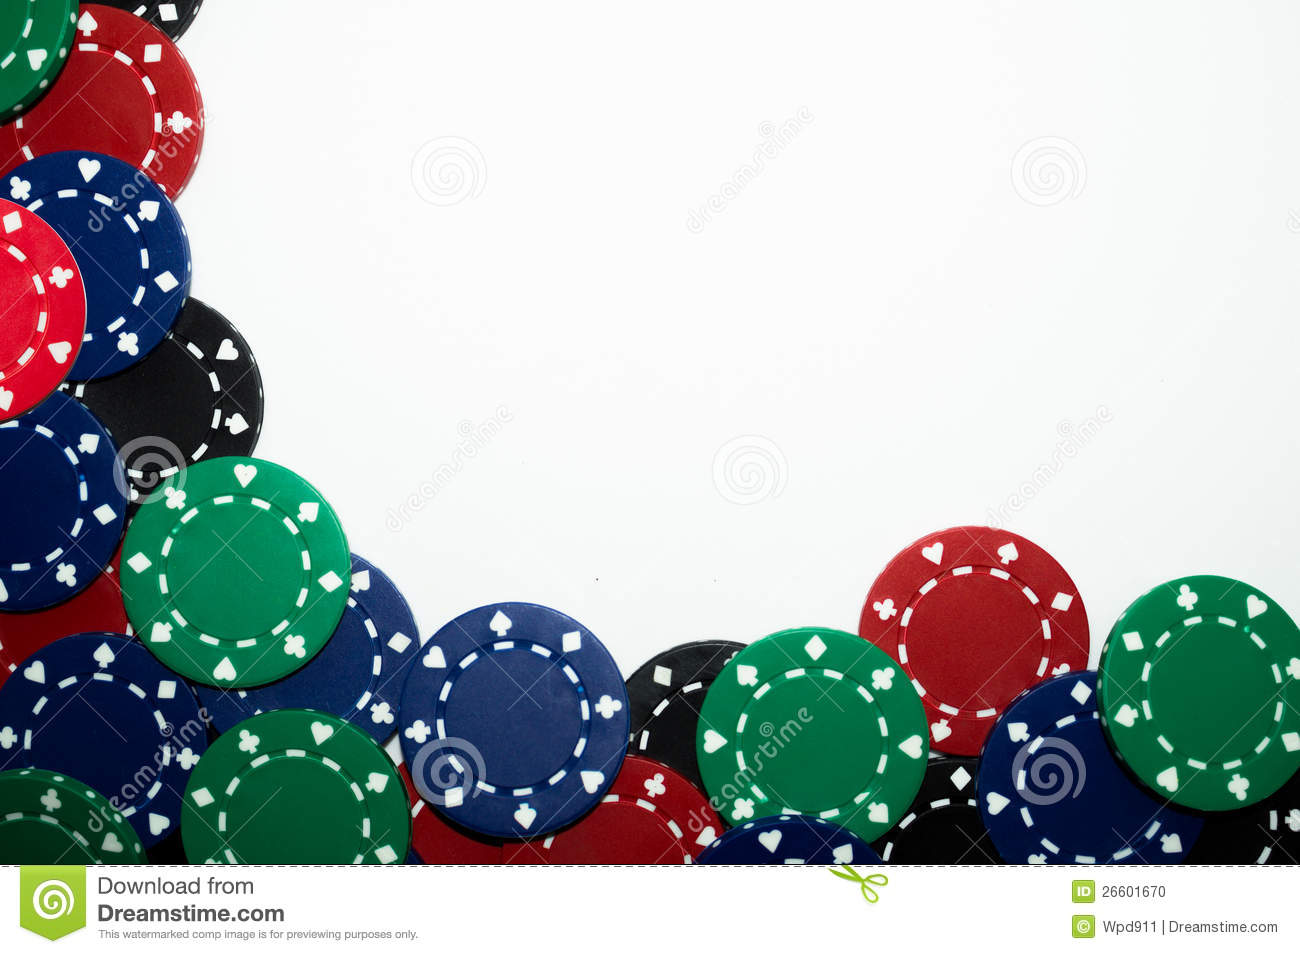 Abstract Poker Chip Background Stock Photo - Image: 26601670